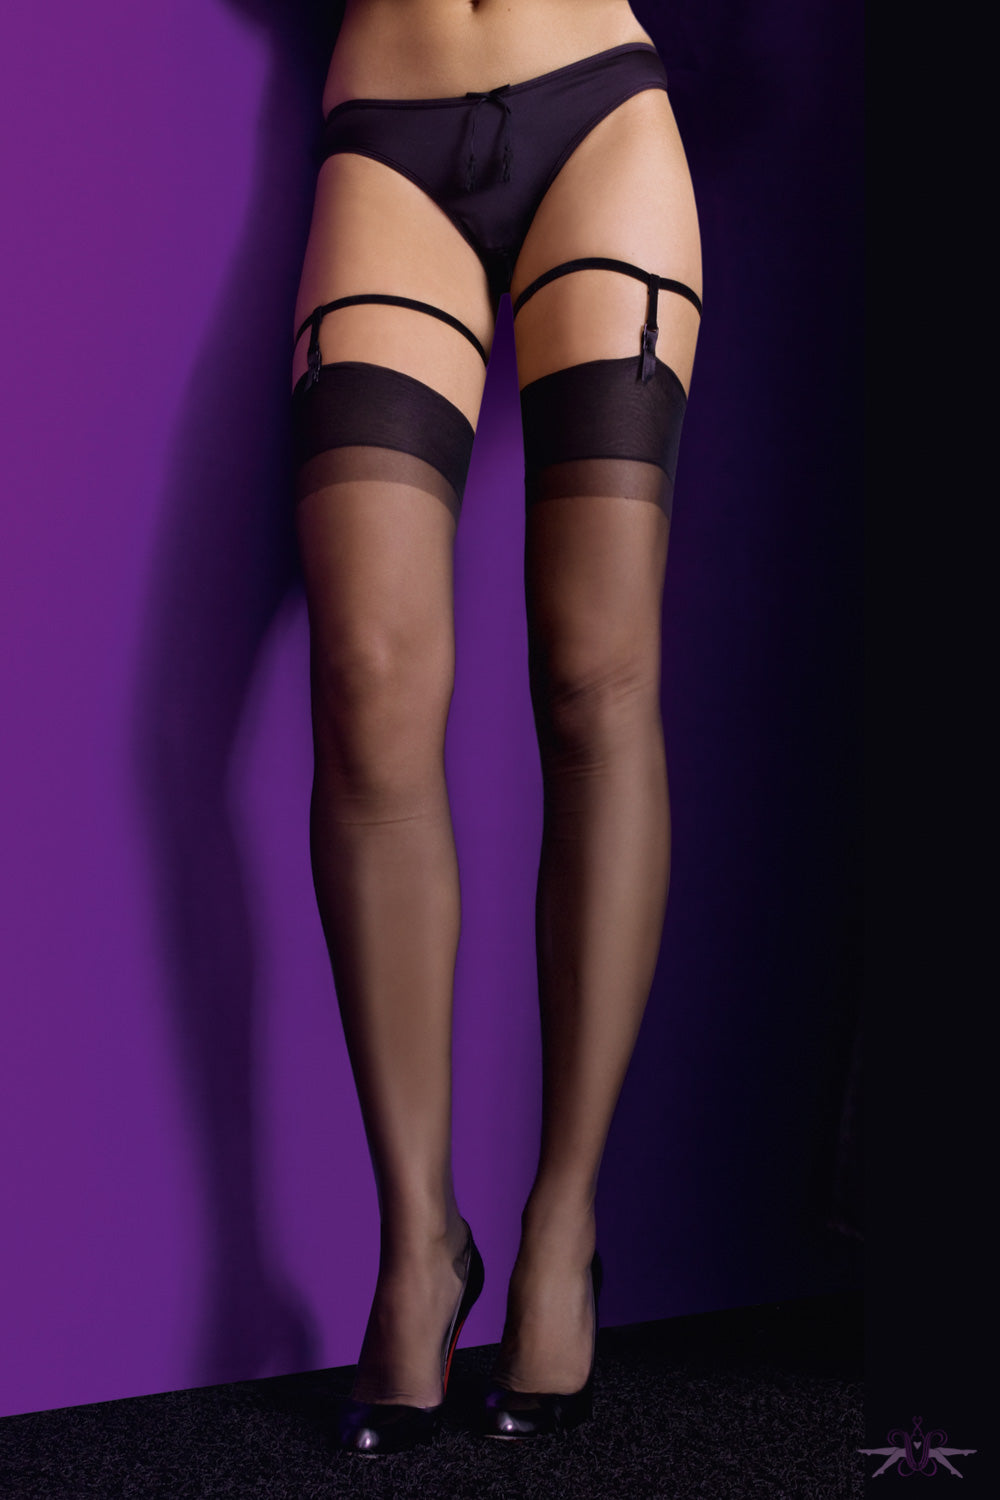 Maison close 39 les fetiches 39 les suspenders mayfair stockings for Maison close